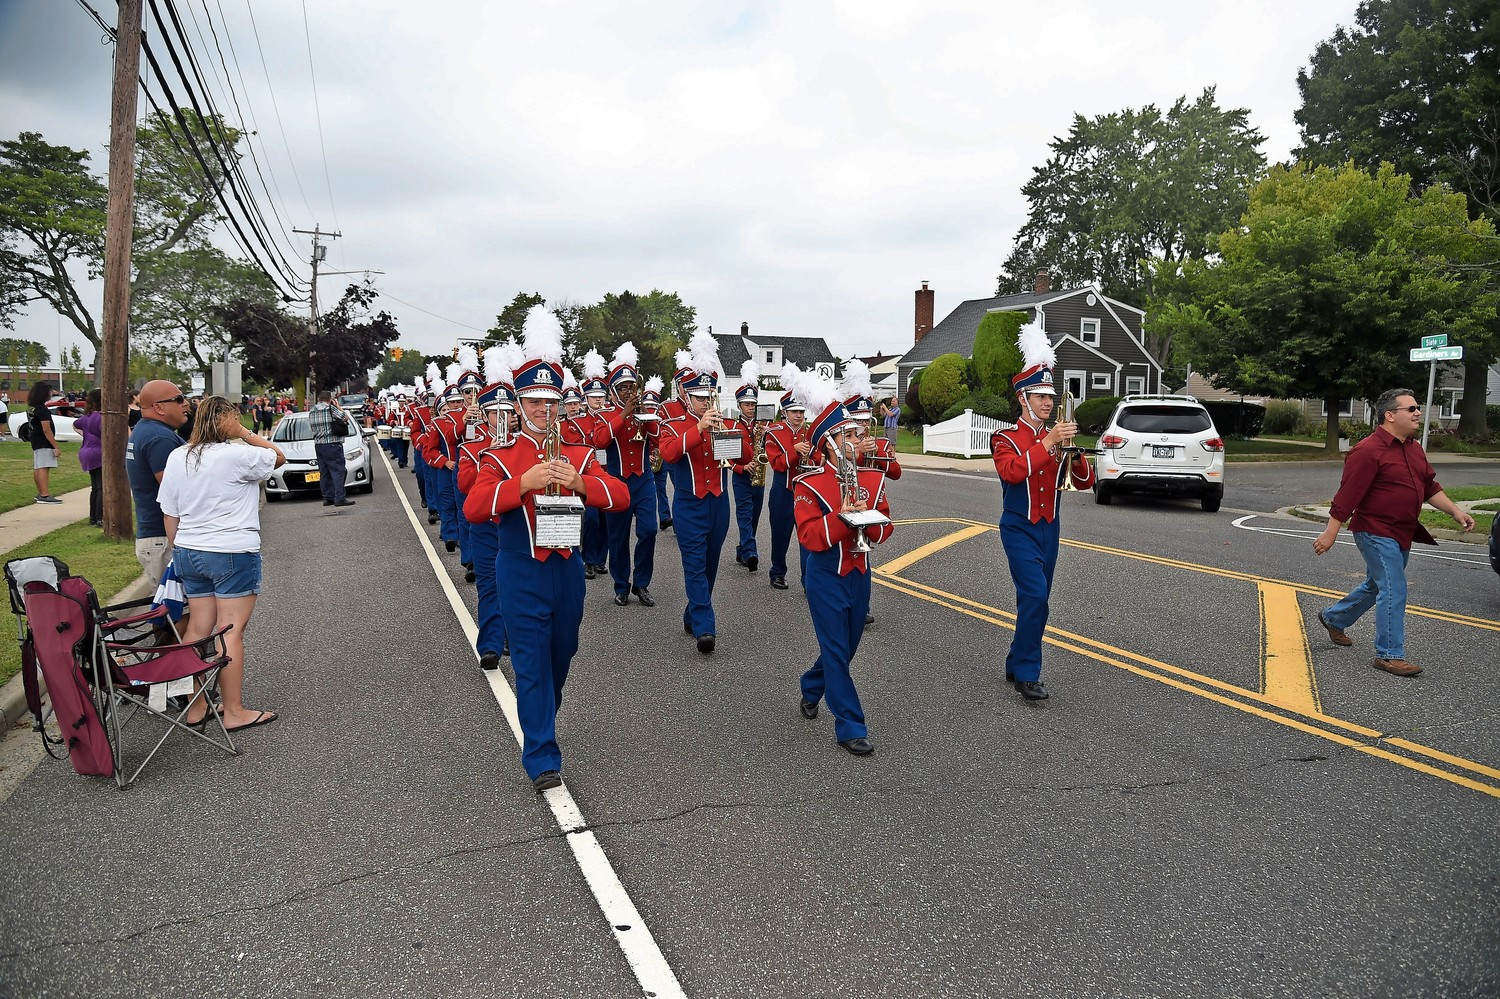 The MacArthur High School marching band led the Homecoming parade on Sept. 16.